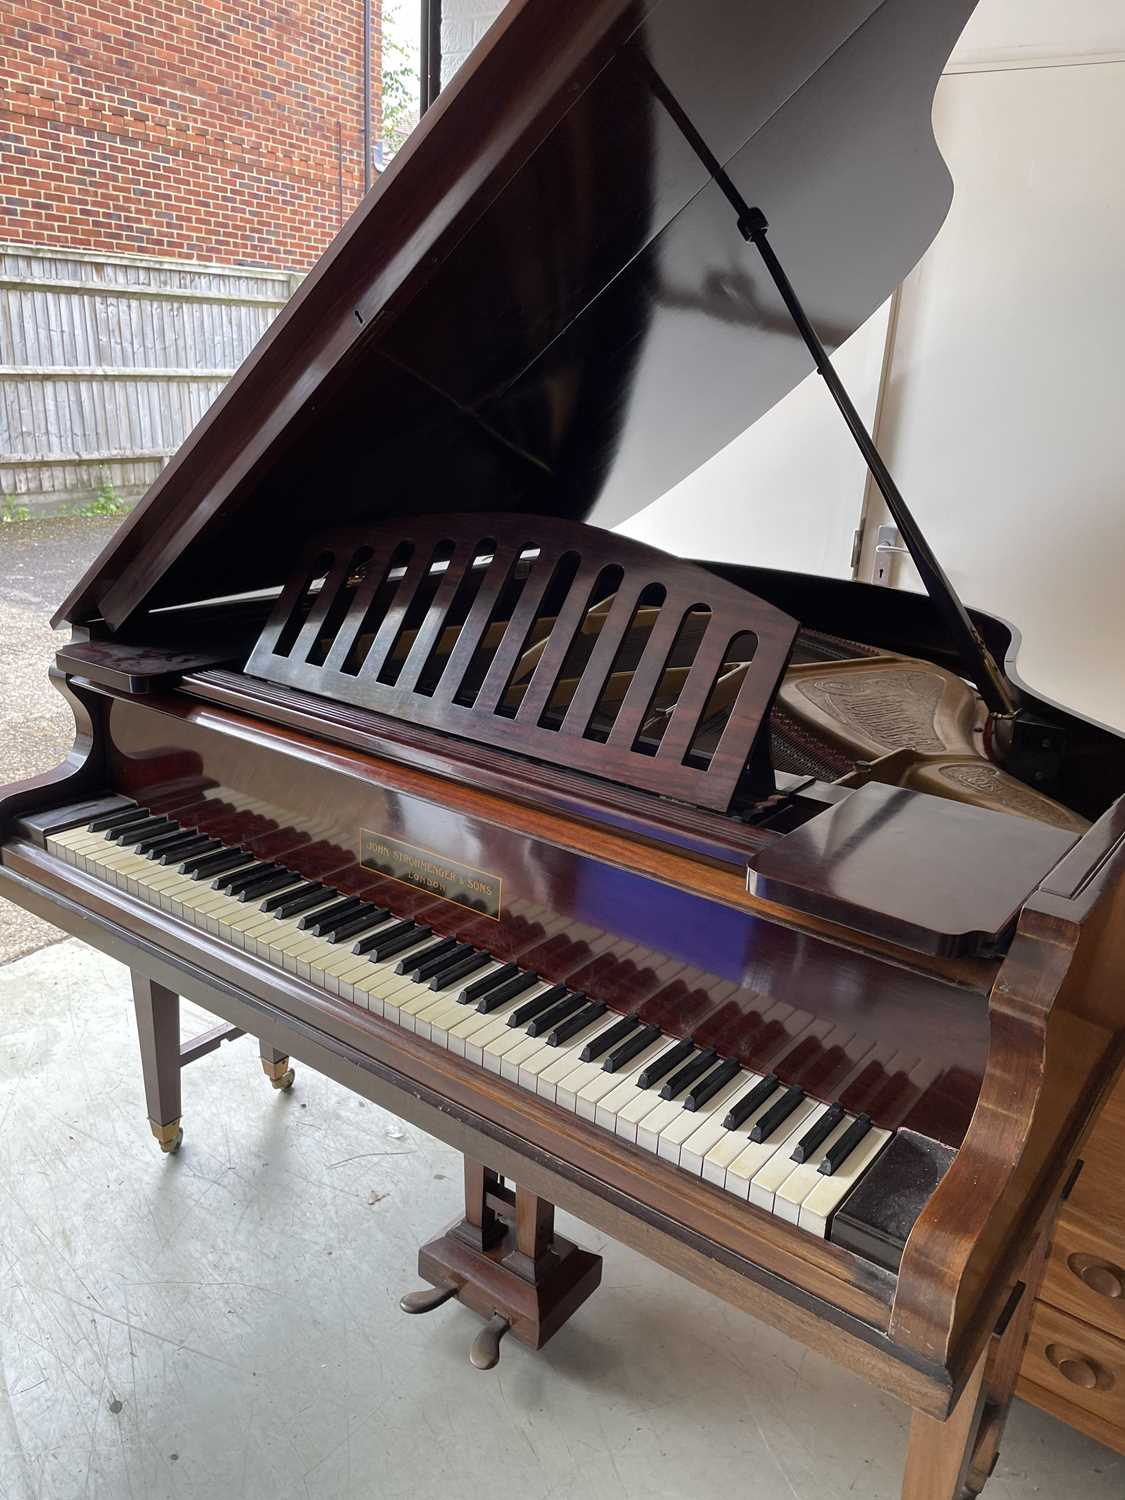 A mahogany cased baby grand piano, by John Strohmenger & Sons, London, 143 cm wide x 101 cm high x - Image 7 of 21